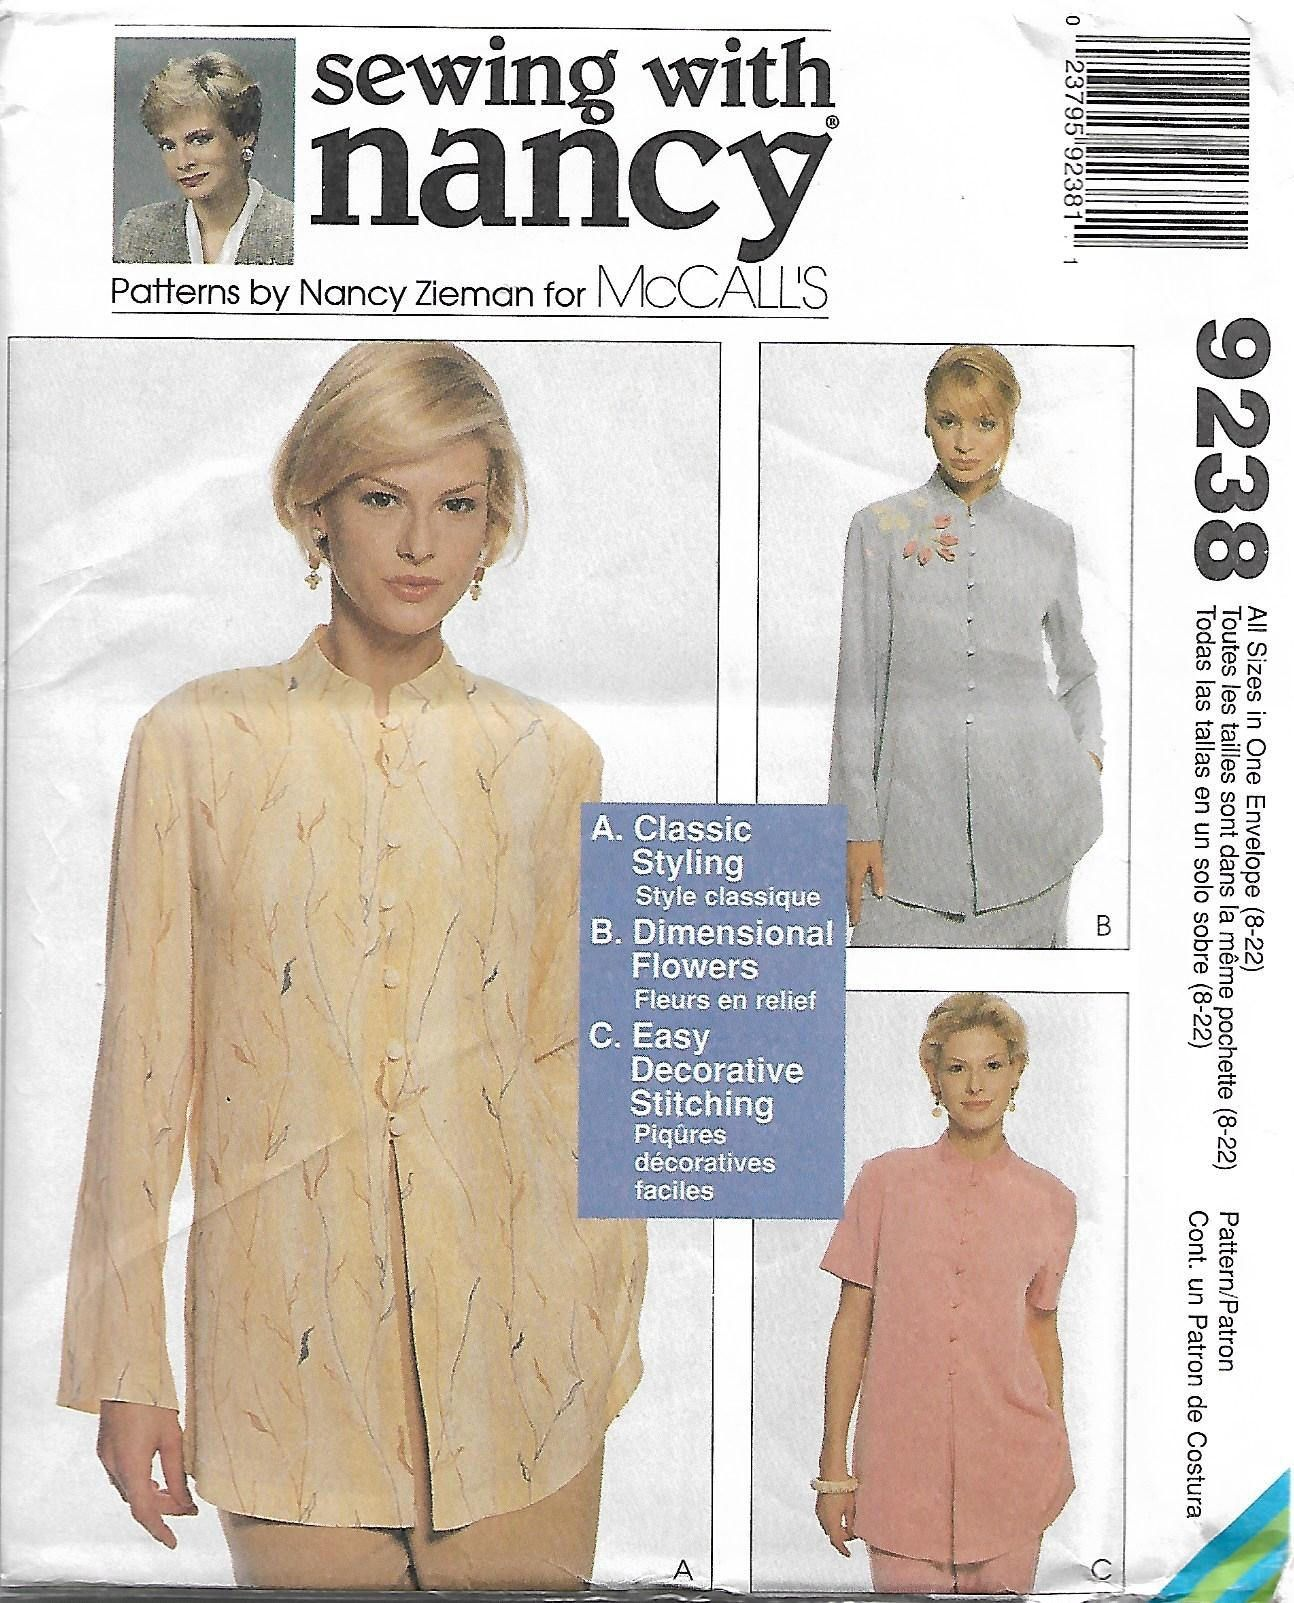 Mccalls 9238 size 8 22 sewing with nancy classic styling mccalls 9238 size sewing with nancy classic styling dimensional flowers easy decorative stitching misses top sewing pattern 1998 uc by jeuxipadfo Image collections